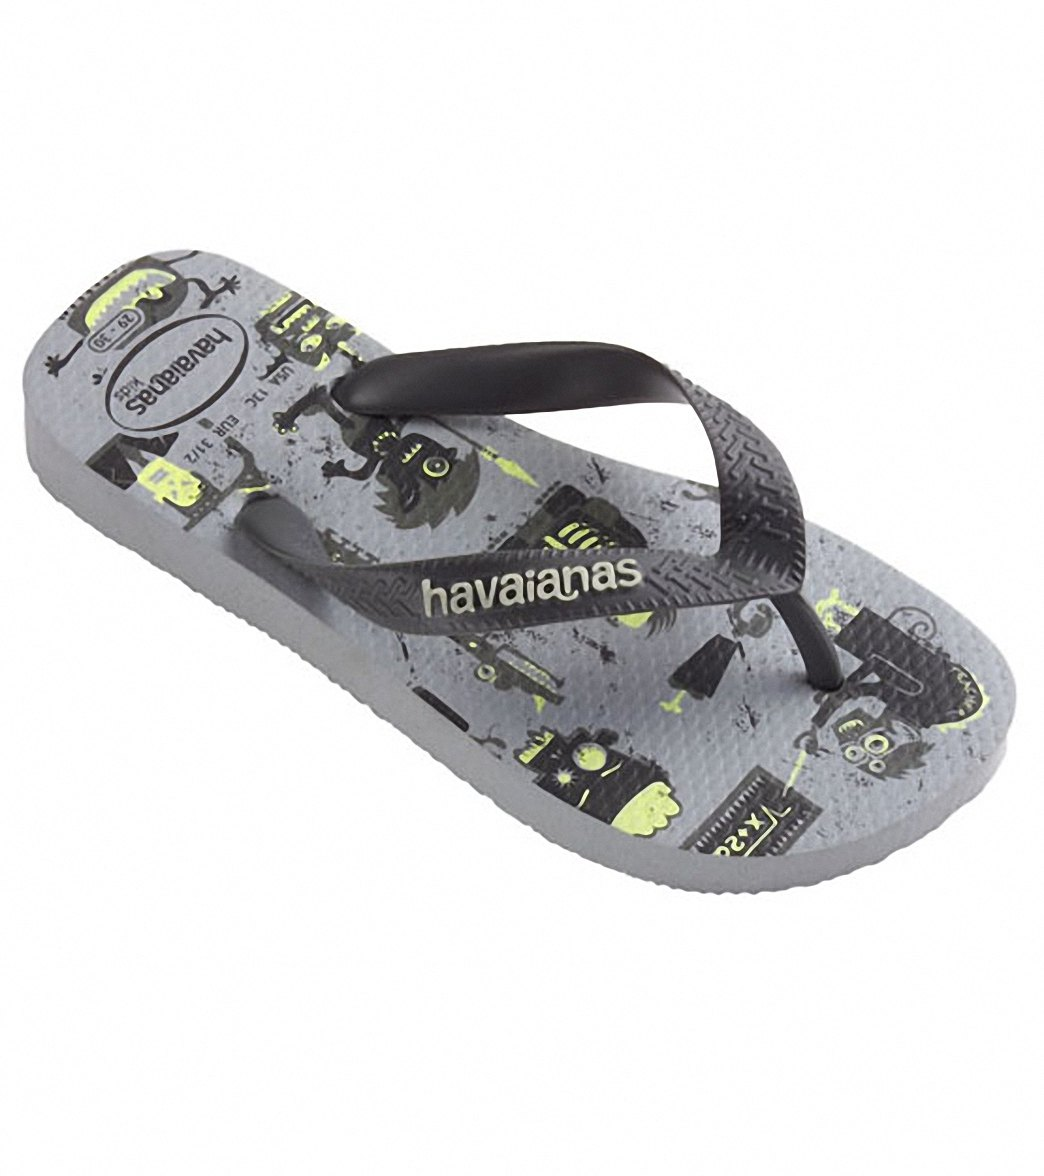 765ee0c742bf8 ... Havaianas Kids  4 Nite Glow In The Dark Flip Flop. Share